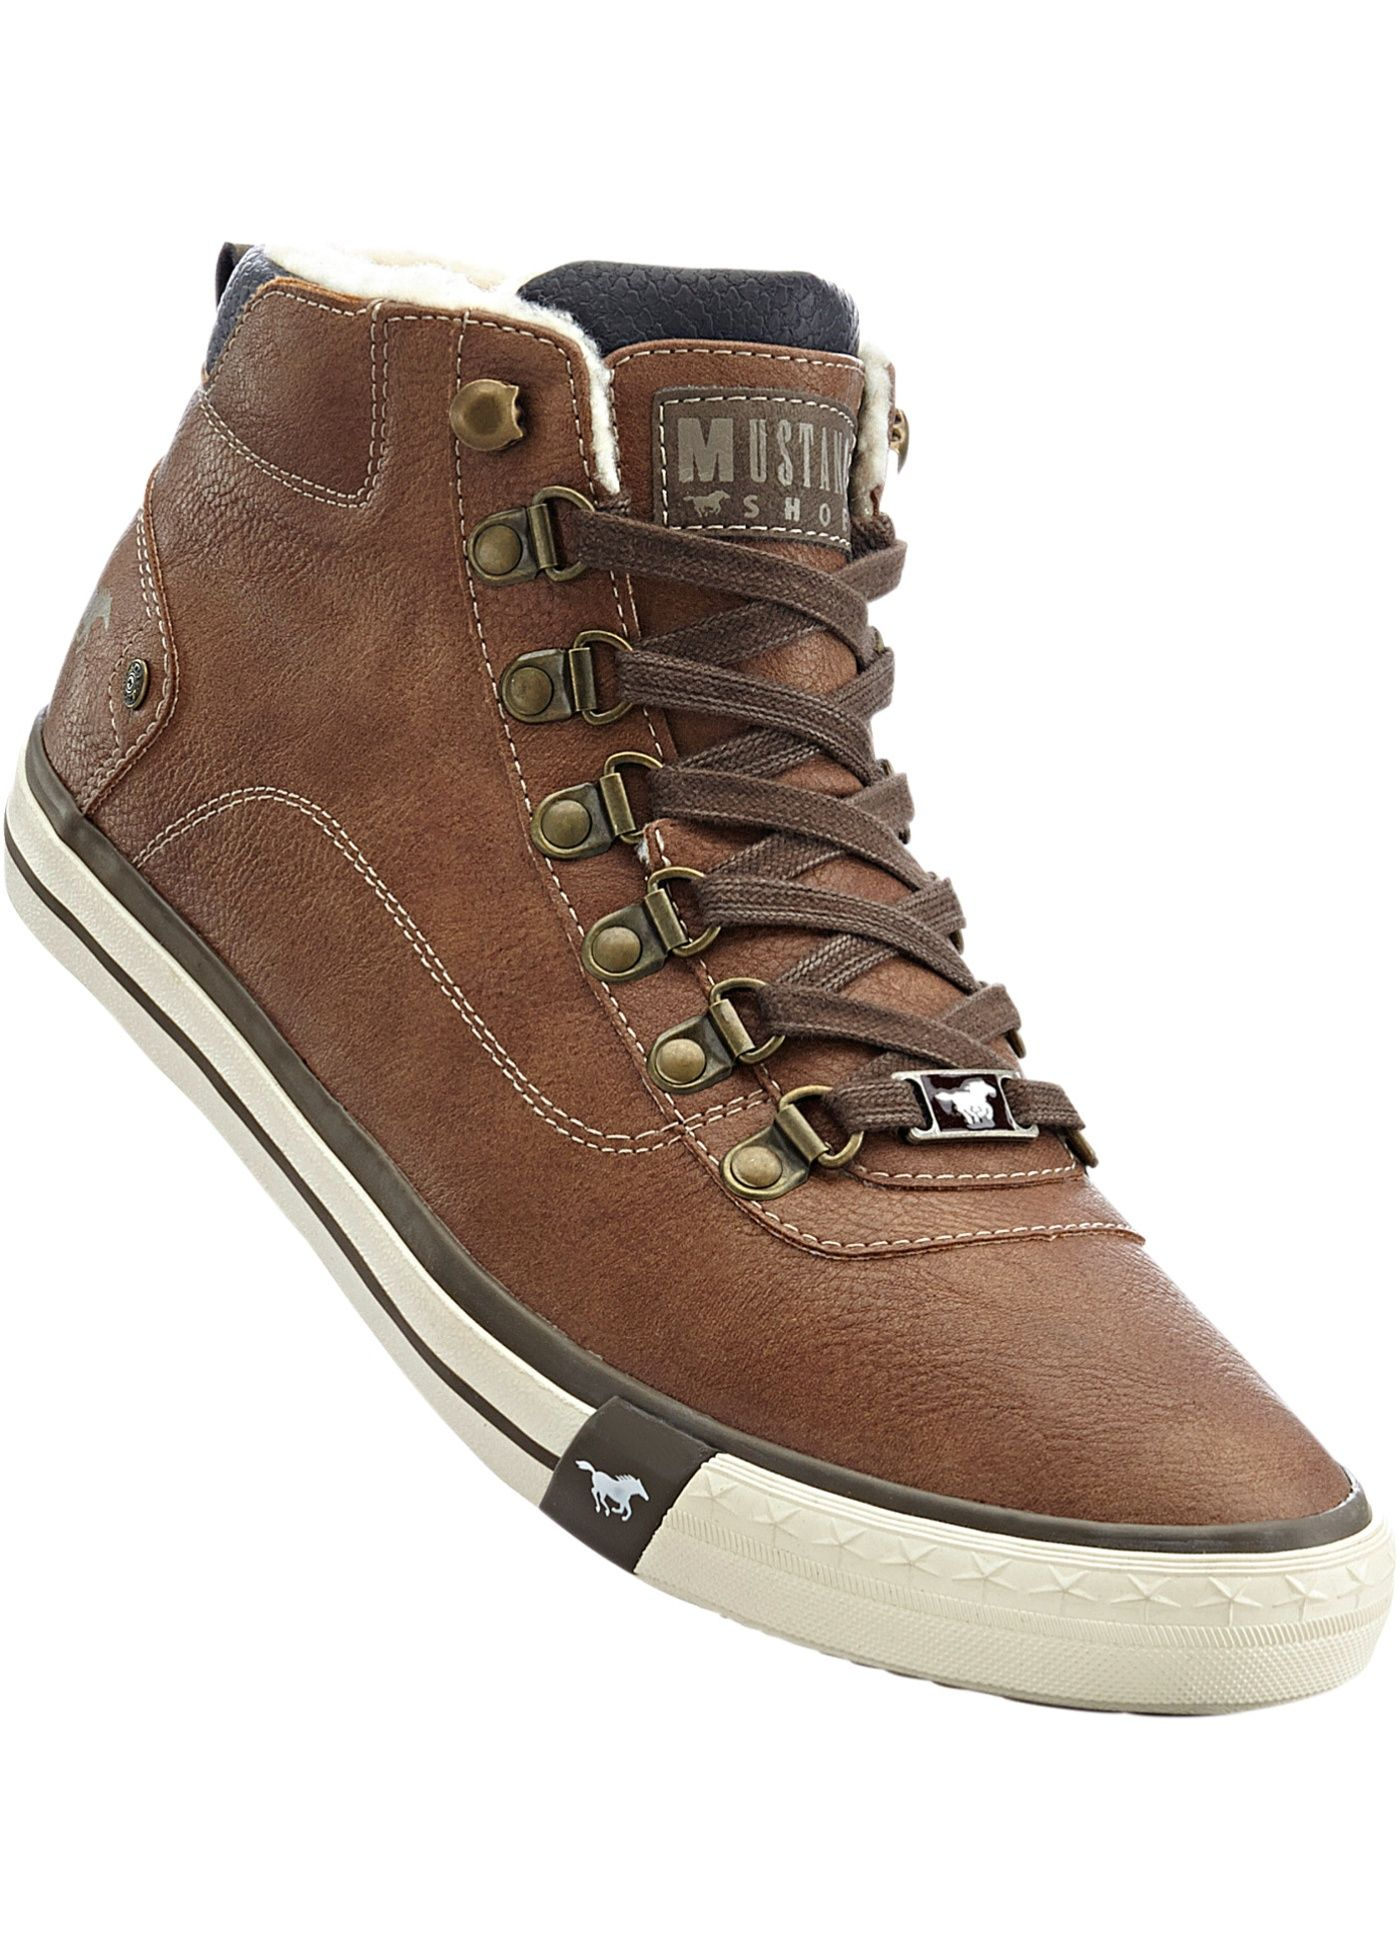 bba00a8b31c7 http   endless.myuggboots.com Lewis amp ...